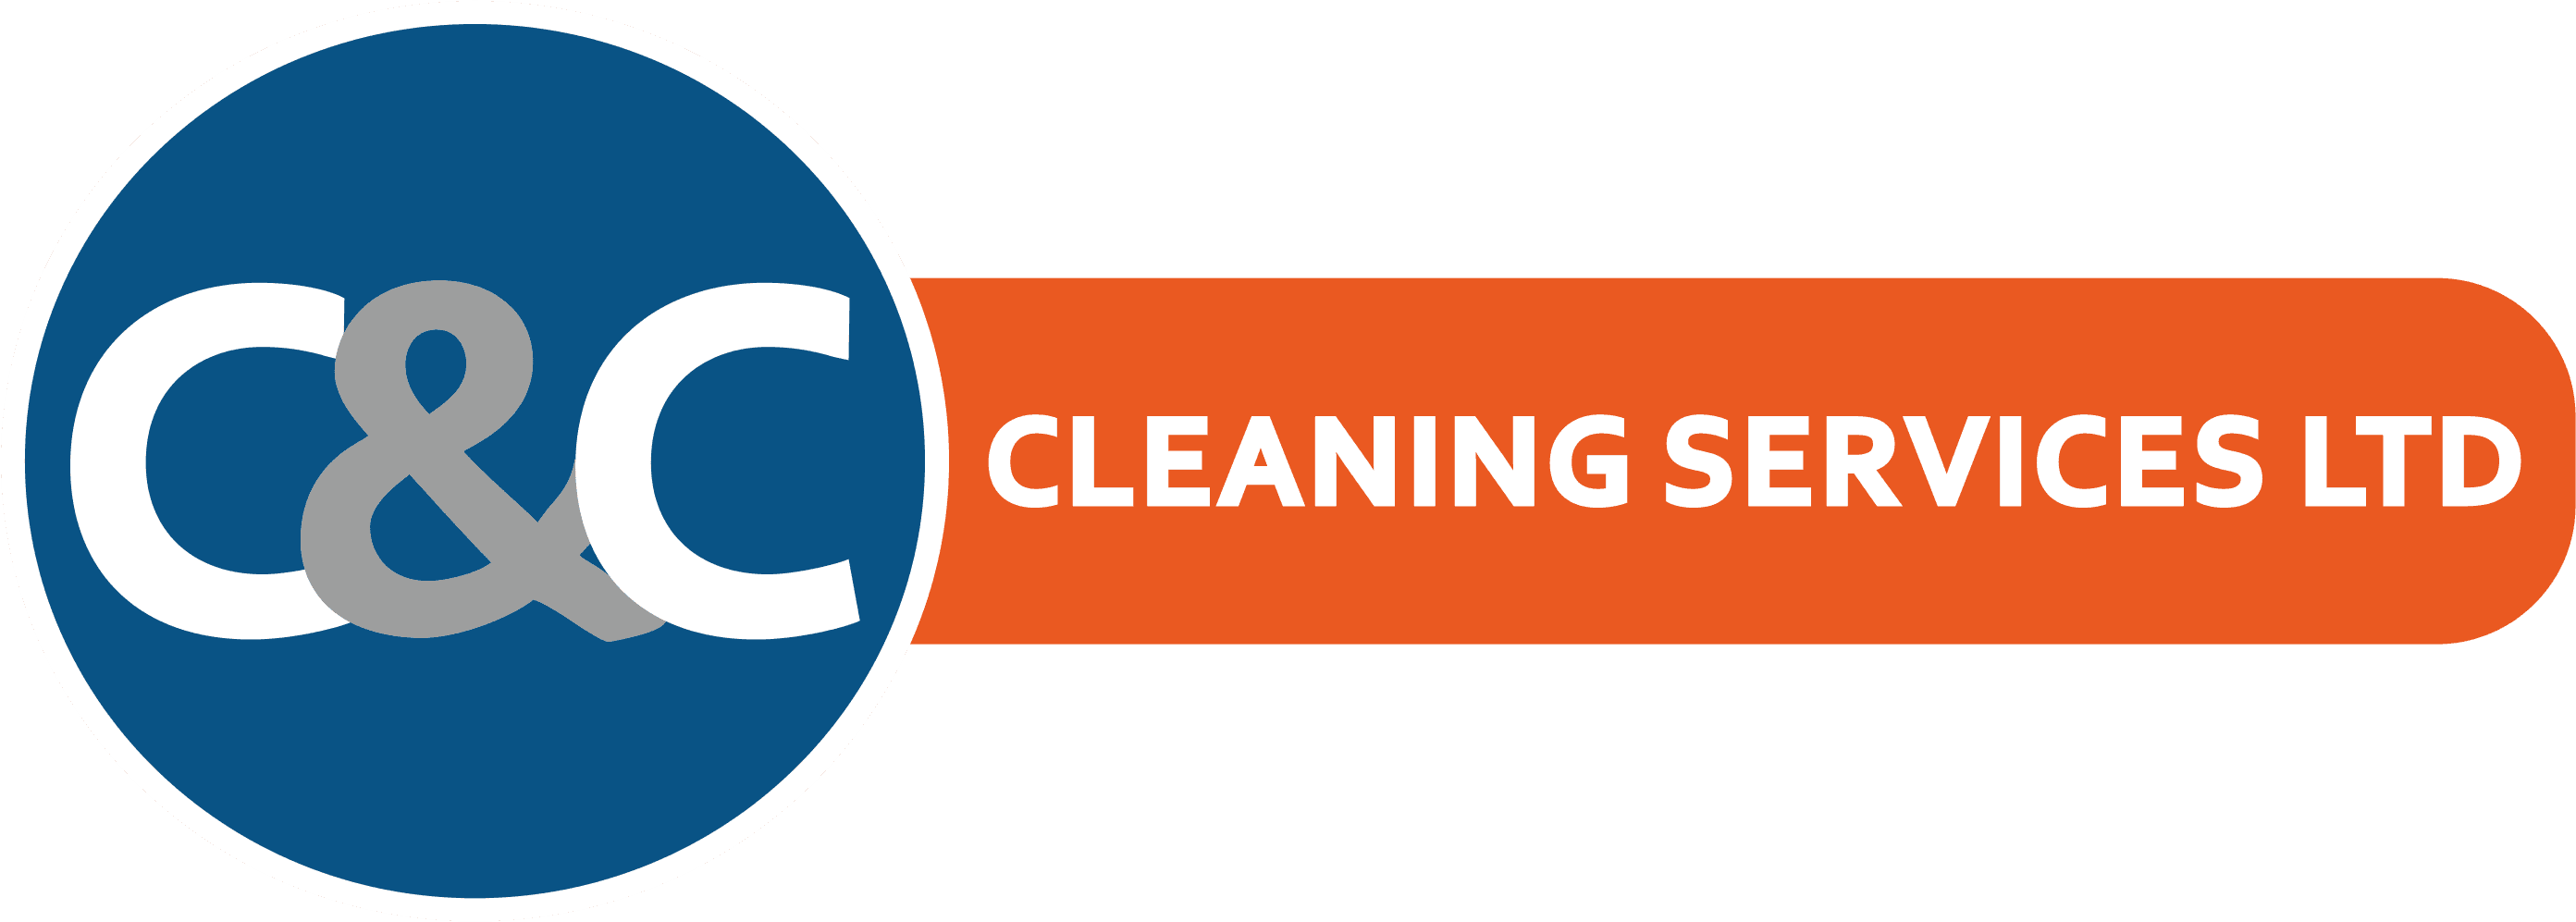 C & C Cleaning Services Ltd Company Logo